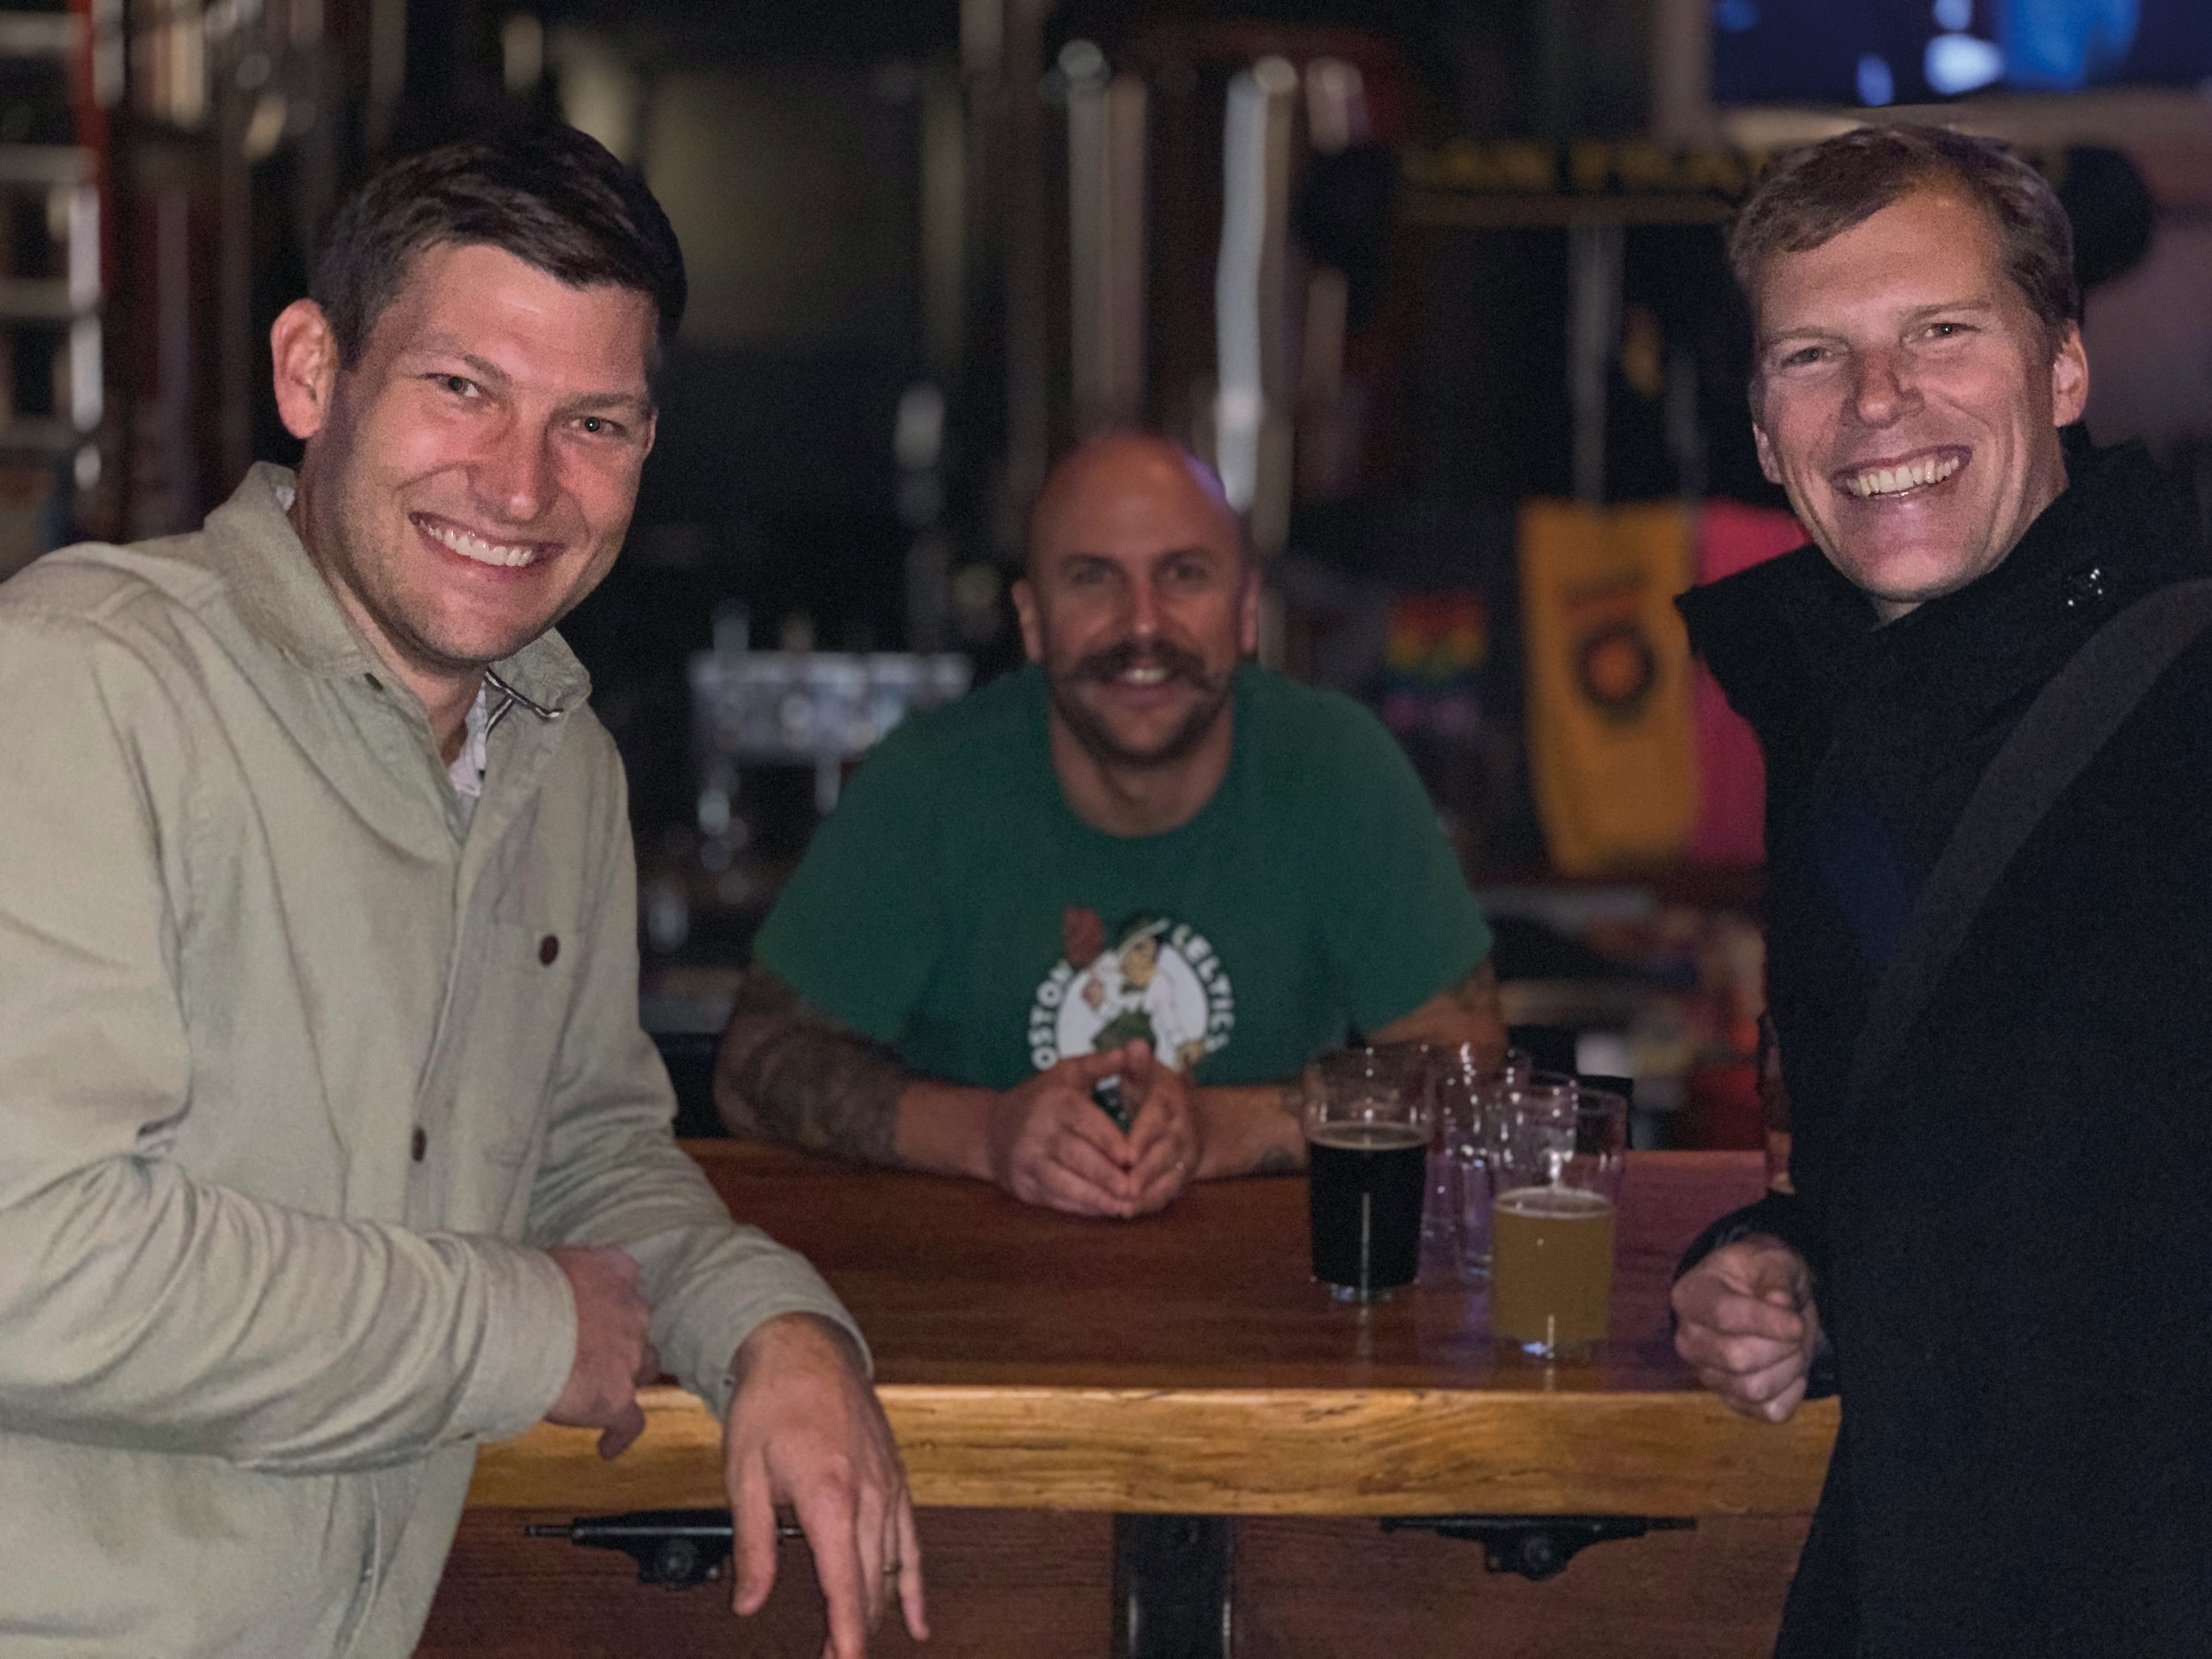 (L. to r.) TJ Leonard '97, Mark Devito '99, and Jamie Funk '97 at Mark's brewery, Standard Deviant.